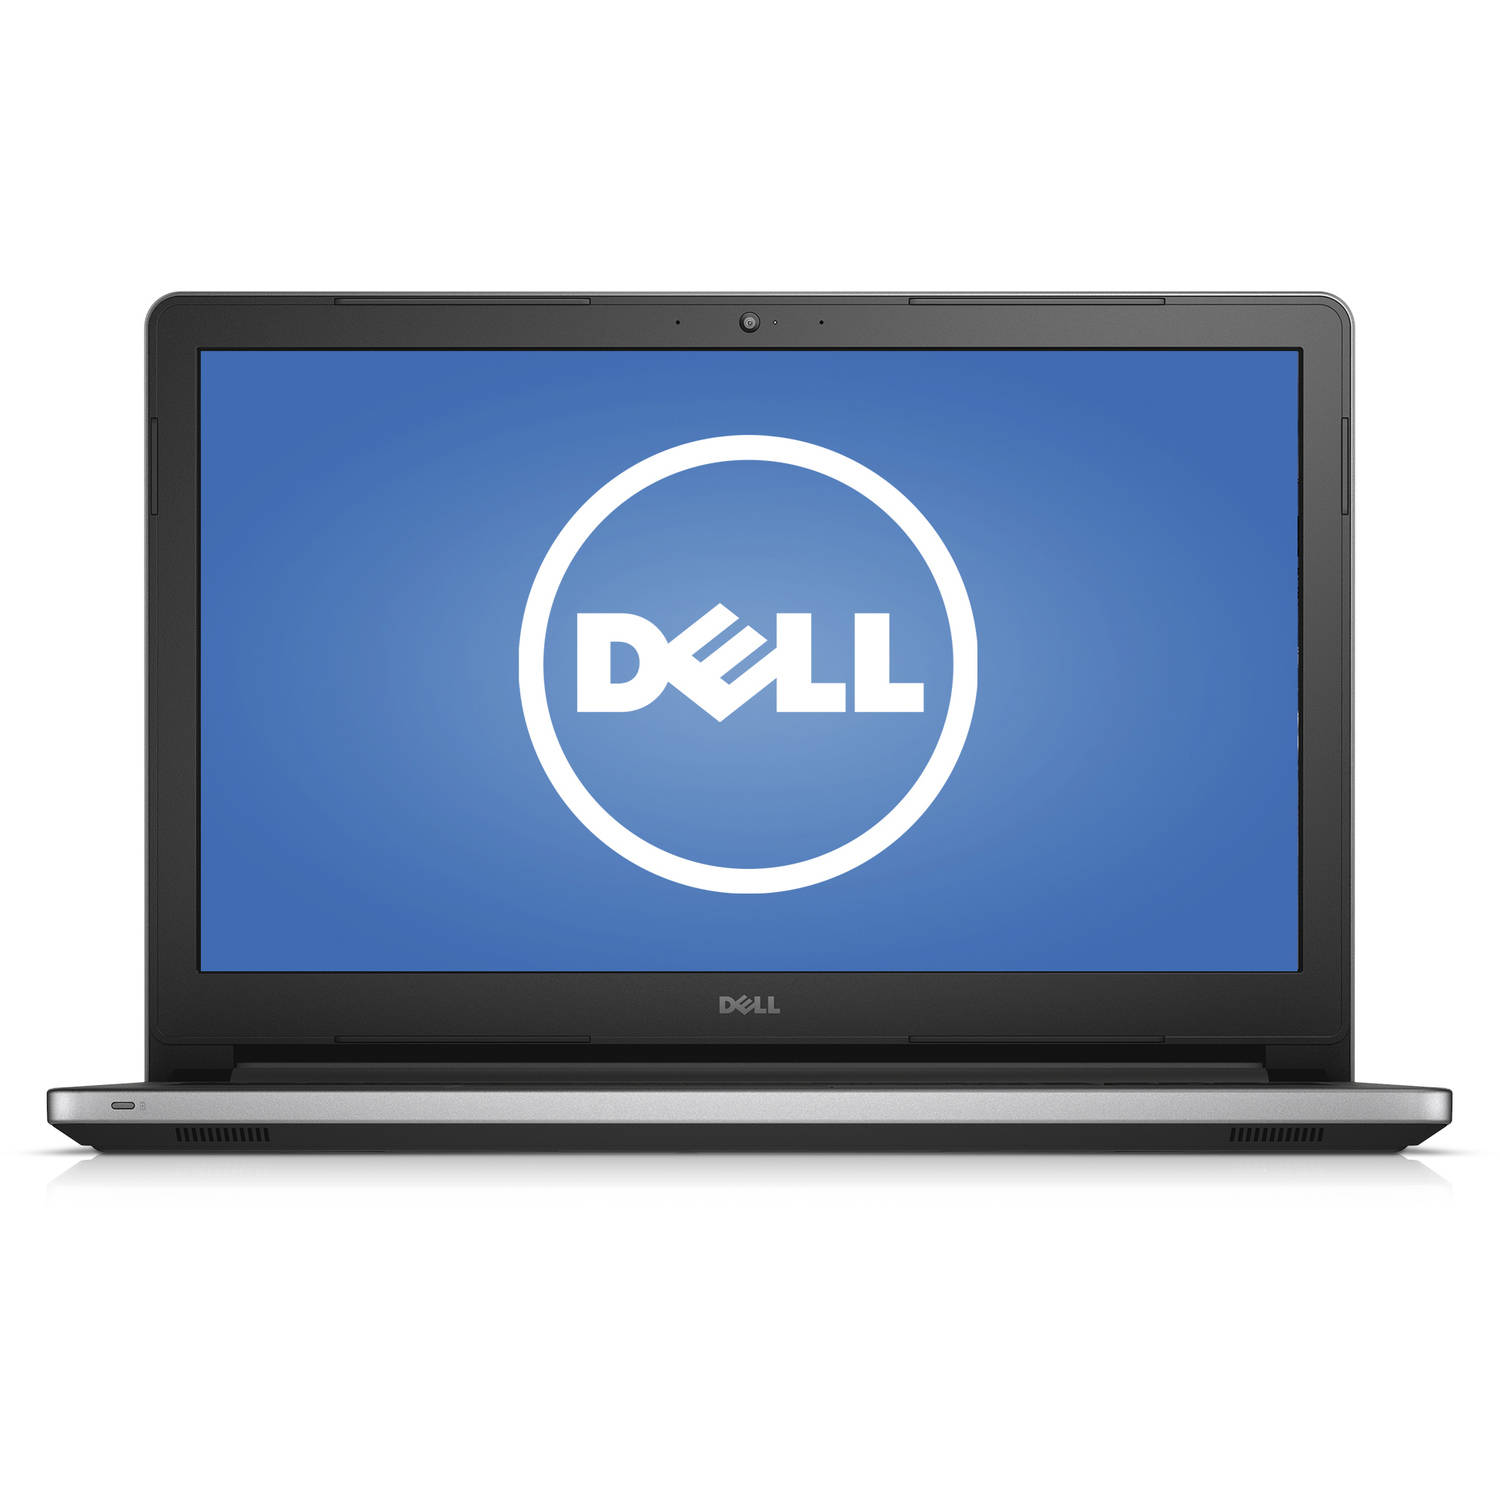 "Dell Silver 15.6"" Inspiron 15 5000 Series (5555) Laptop PC with AMD A10-8700P Processor, 12GB Memory, 1TB Hard Drive and Windows 10 Home"